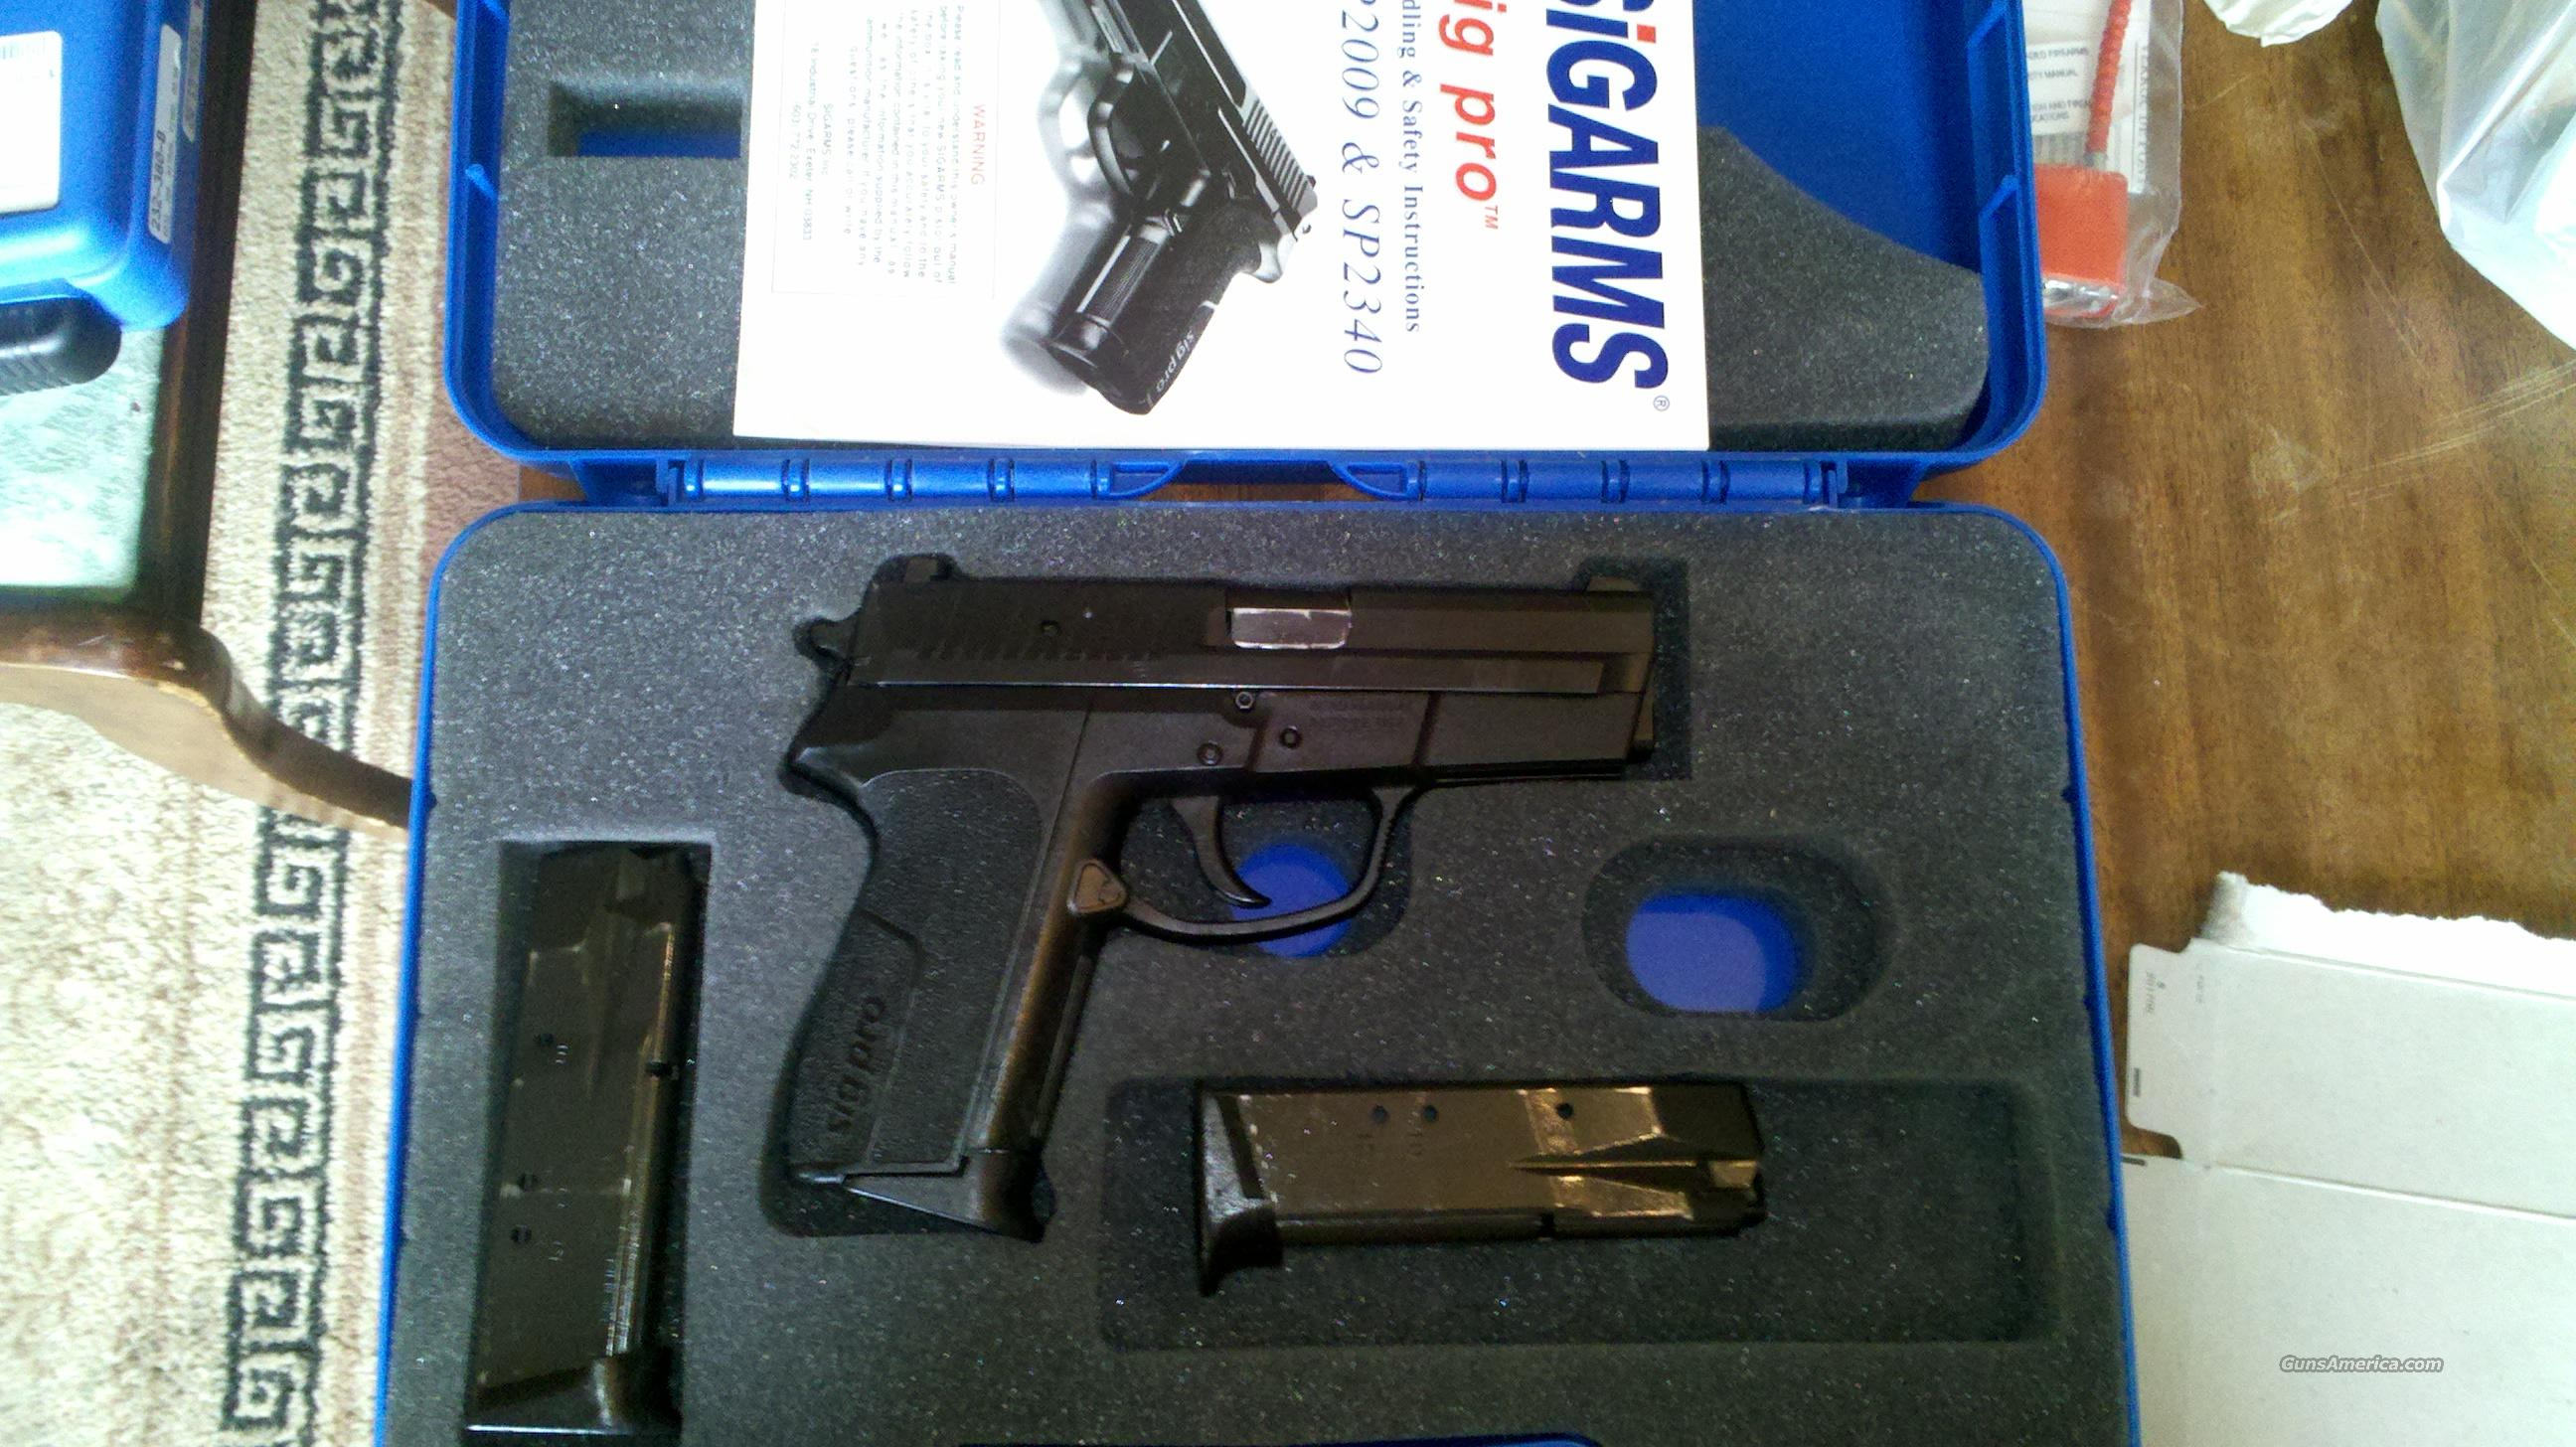 357 Sig Pro Police Issue aka SP2340 - Night Sights  Guns > Pistols > Sig - Sauer/Sigarms Pistols > 2340